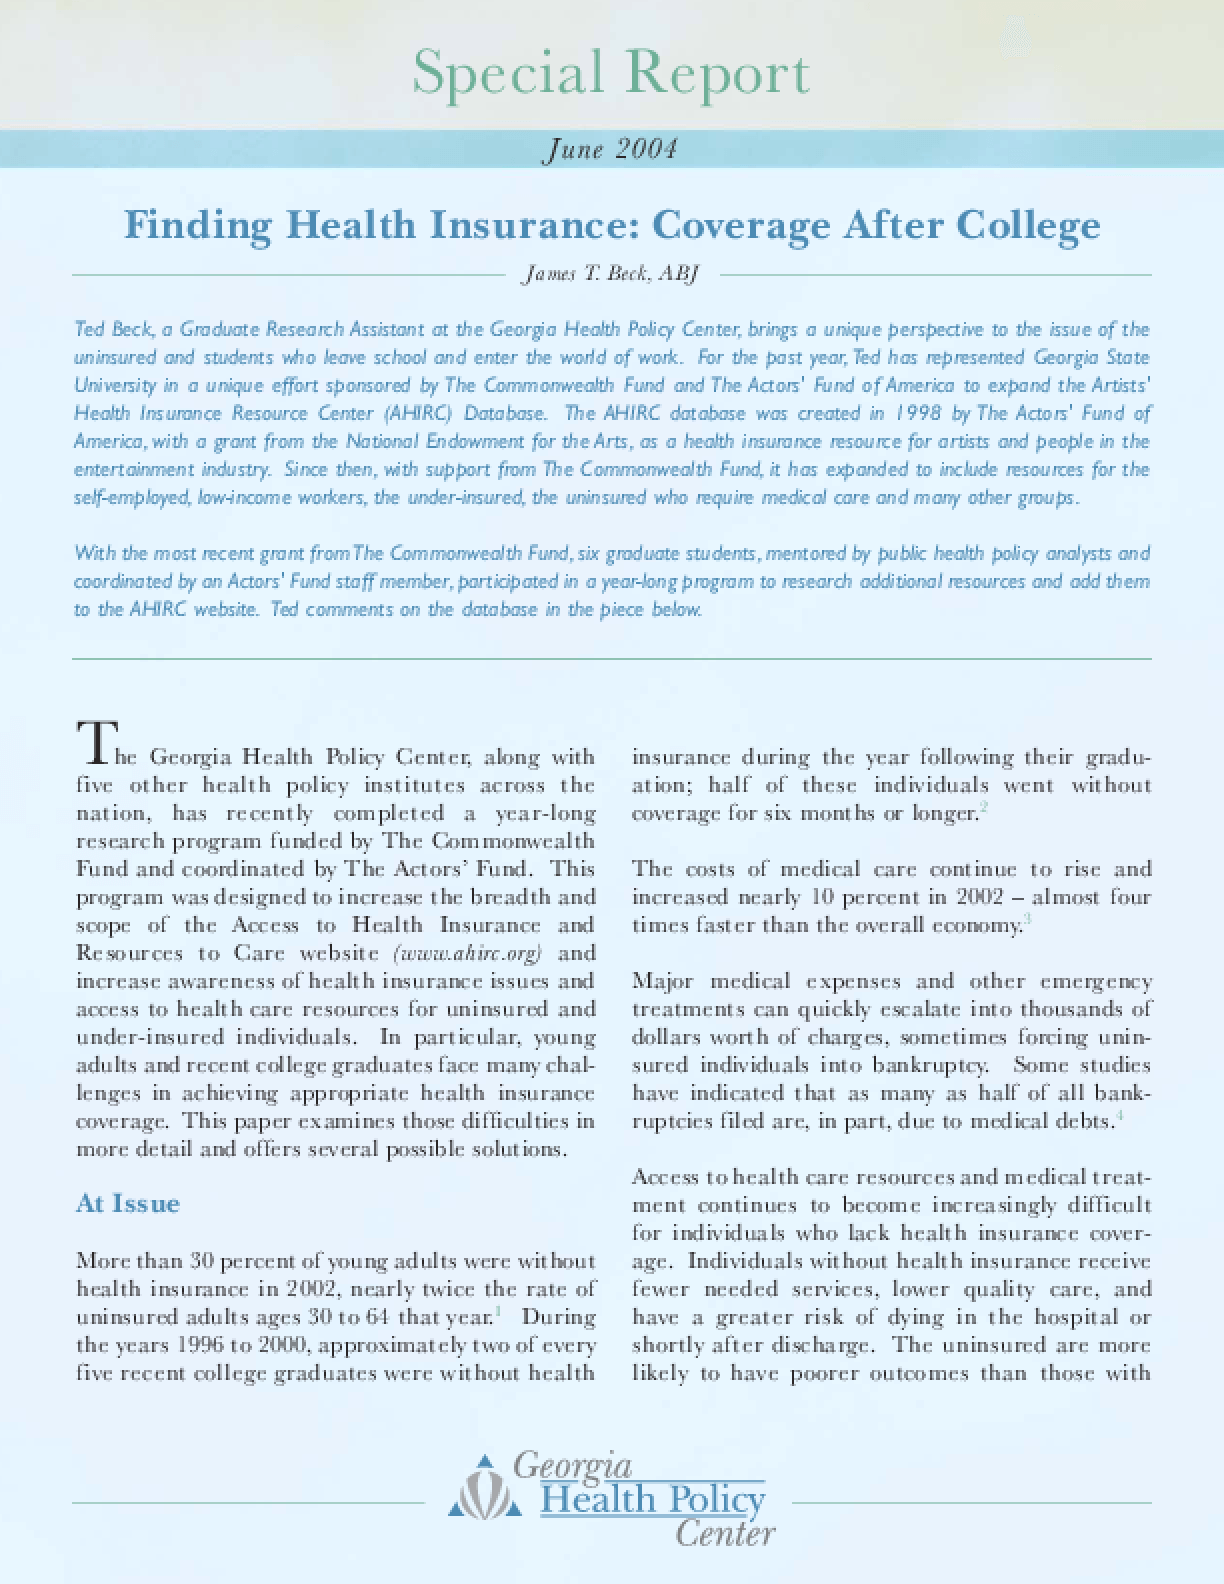 Finding Health Insurance: Coverage After College